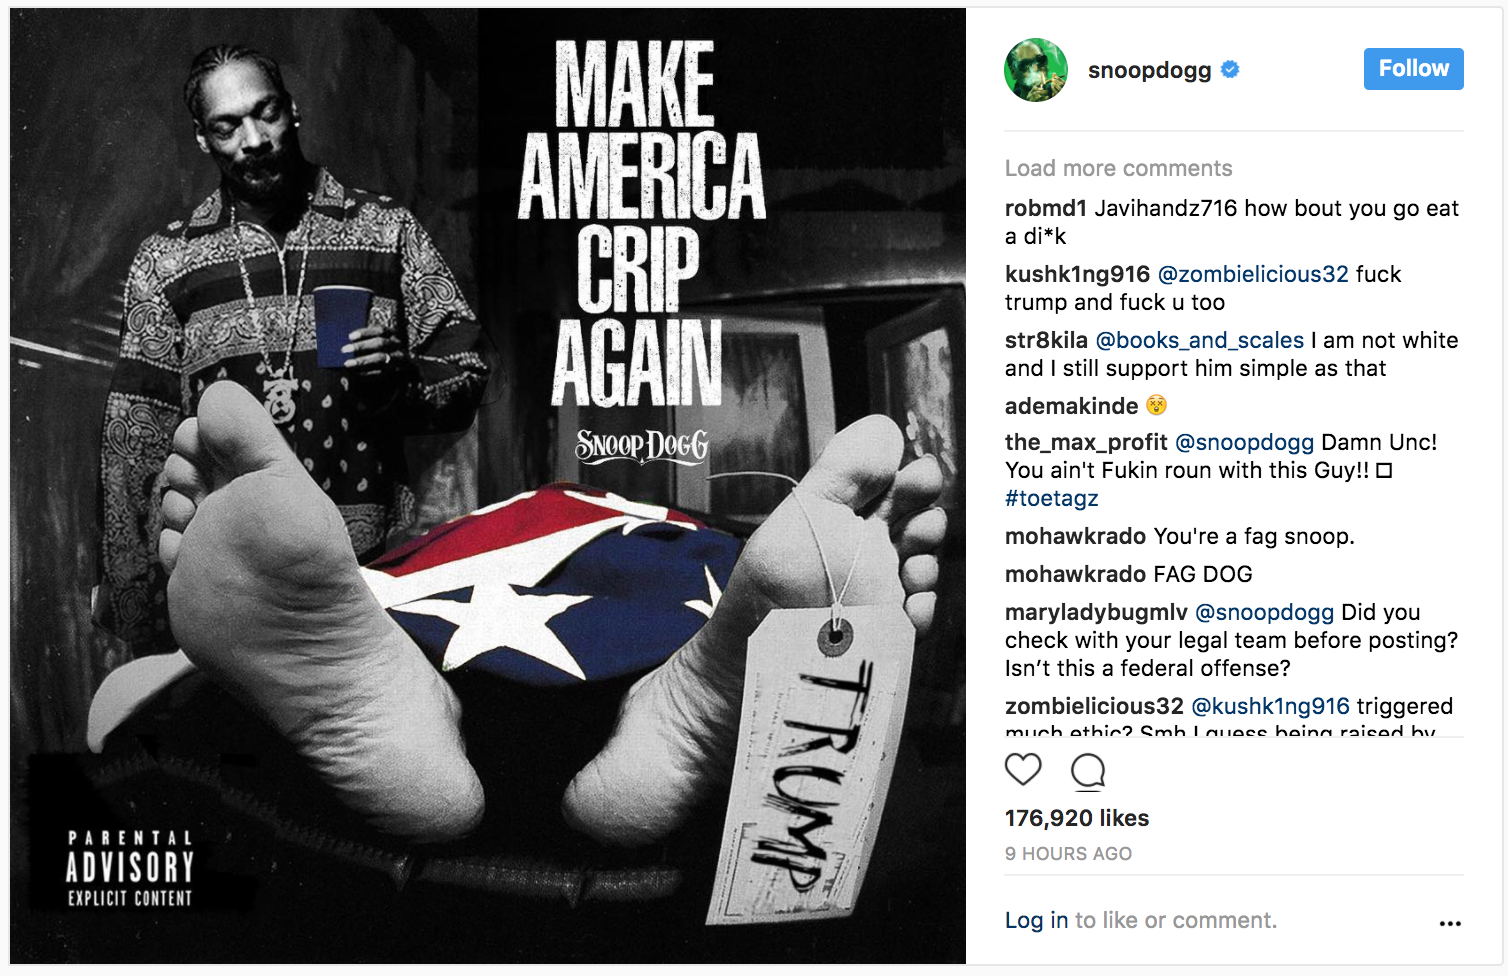 Snoop Dogg Mocks Trump Death With New Album Cover